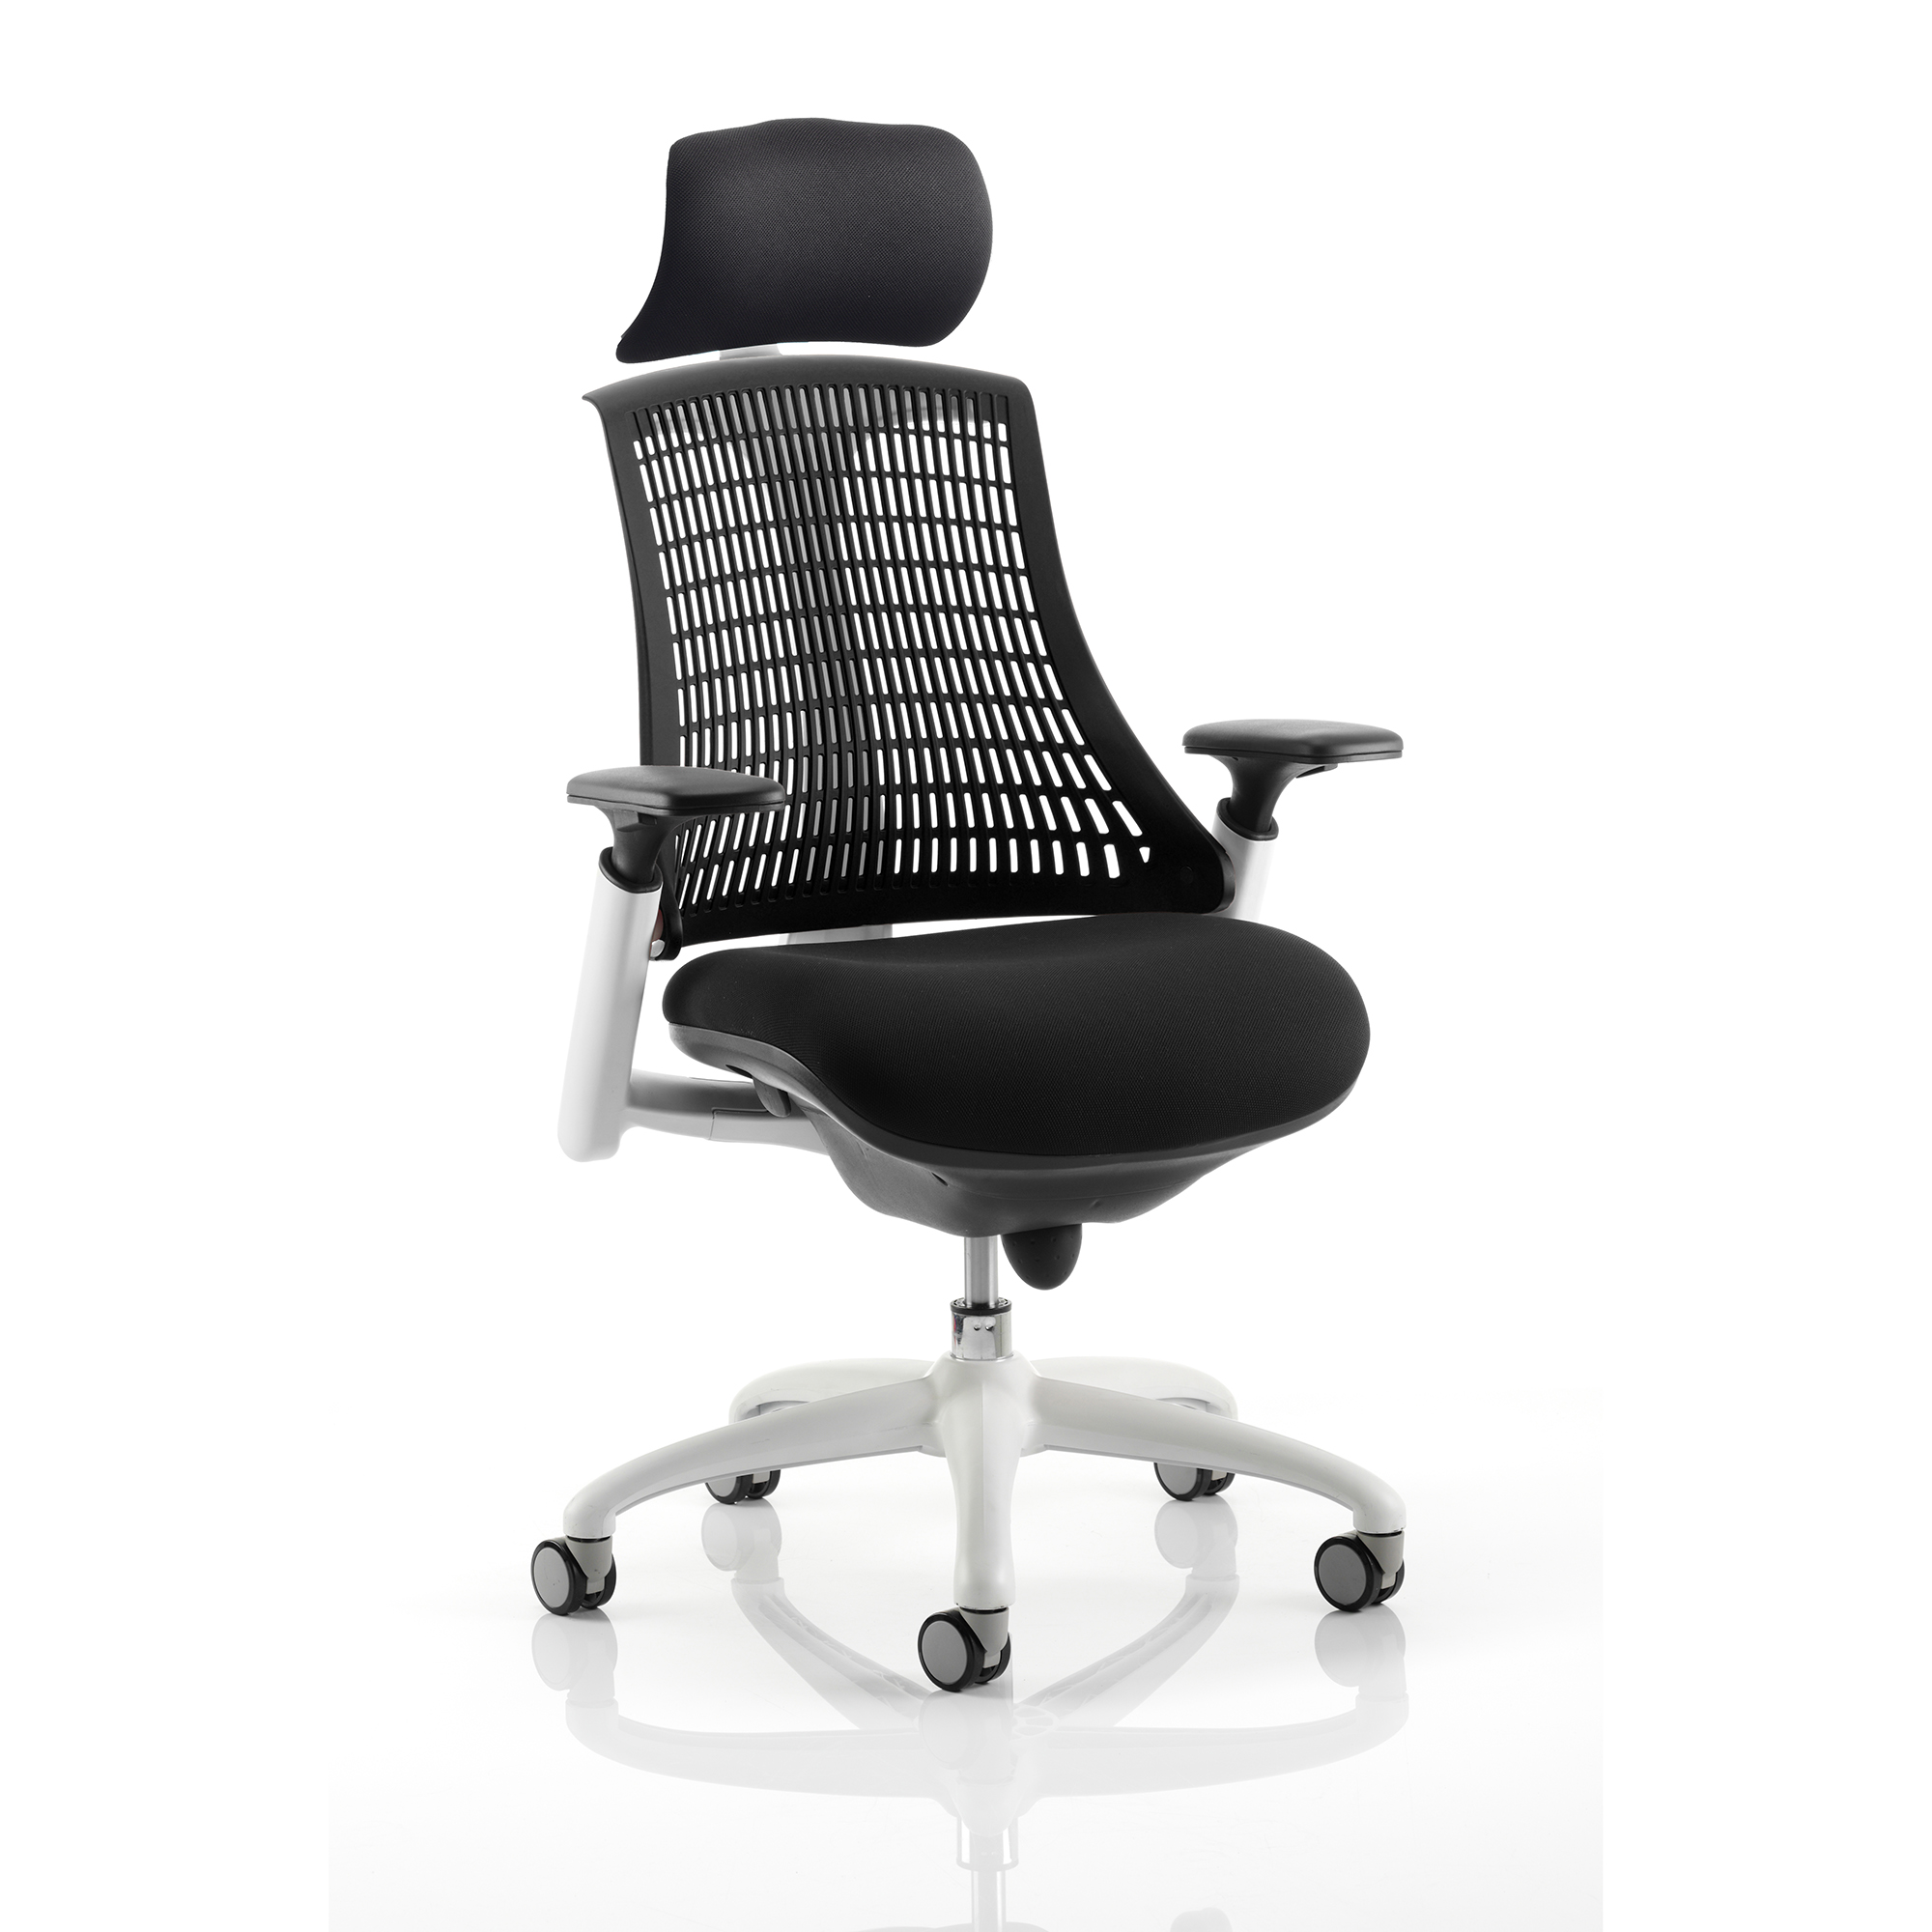 Guest seating Trexus Flex Task Operator Chair With Arms And Headrest Blk Fabric Seat Black Back White Frame Ref KC0087